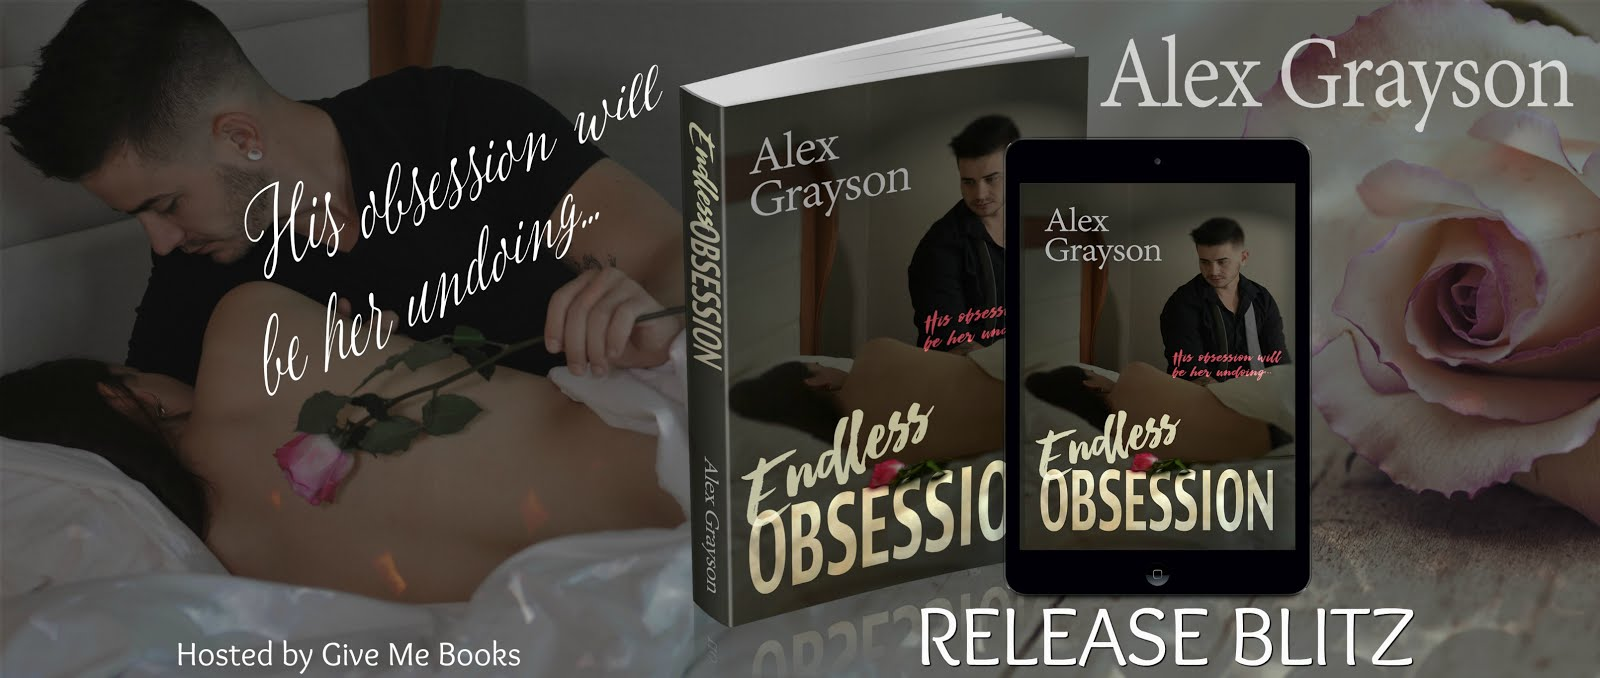 Endless Obsession Release Blitz